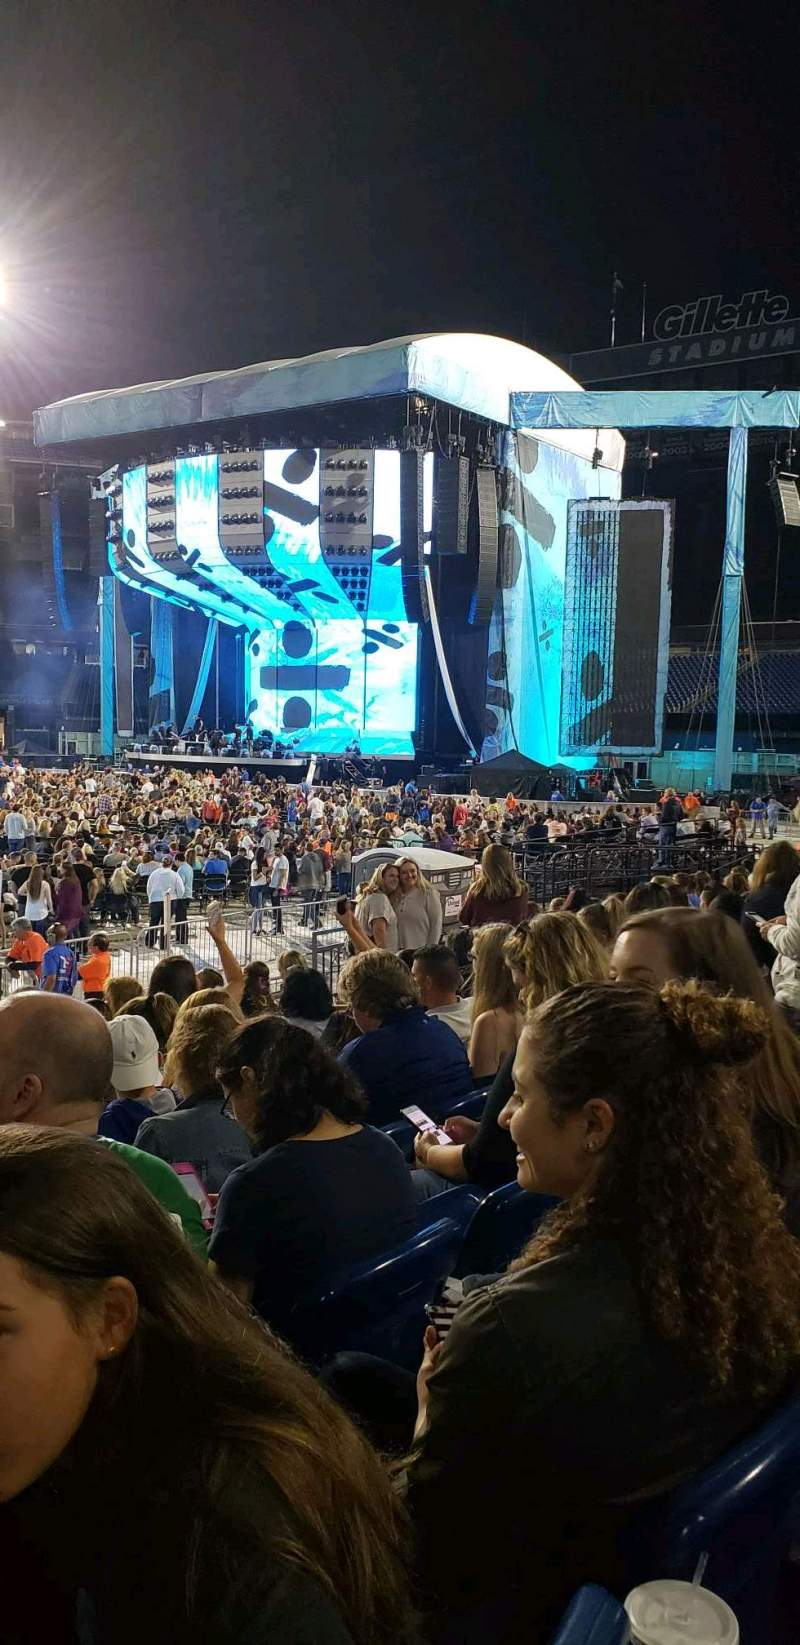 Seating view for Gillette Stadium Section 132 Row 8 Seat 15